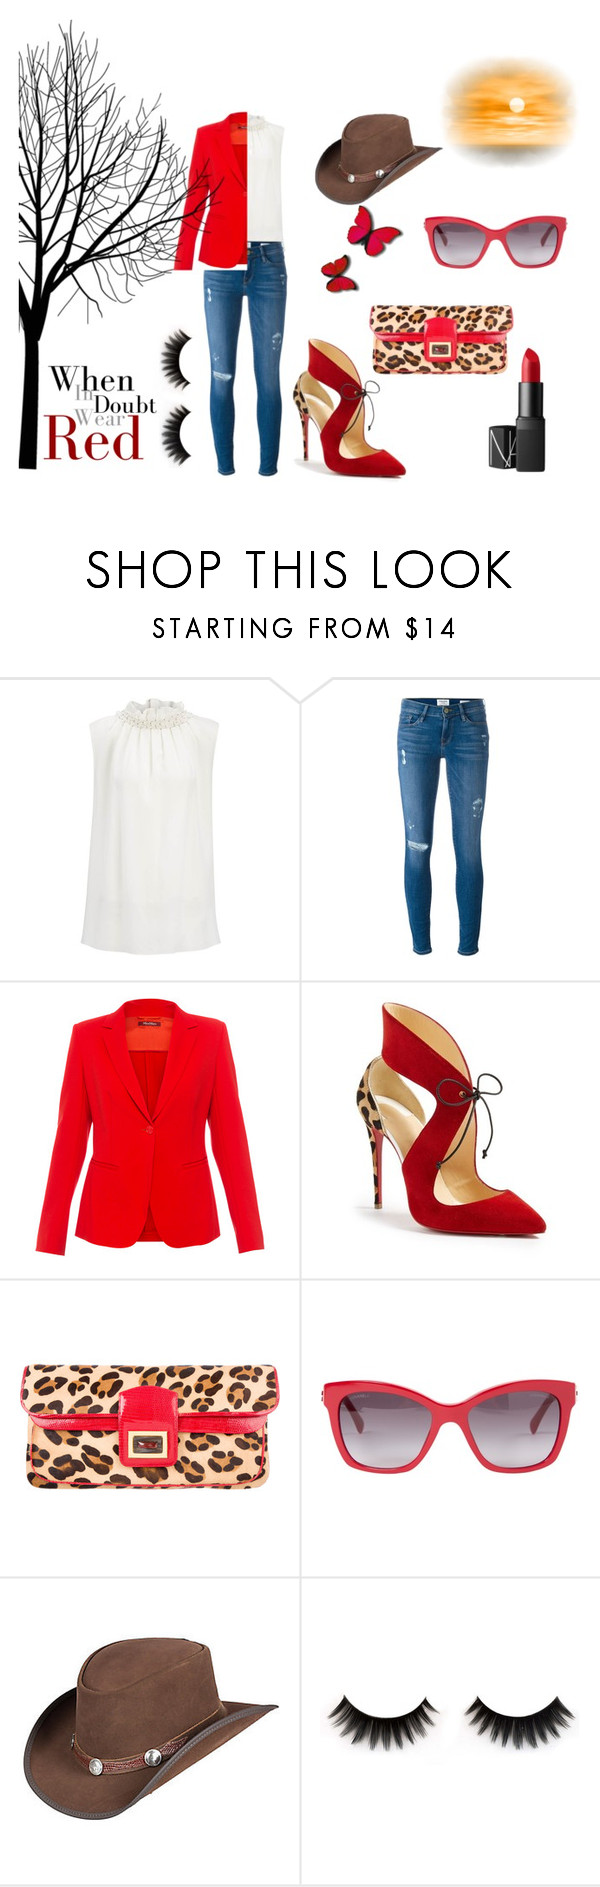 """When in Doubt, Wear Red"" by flowerbud77 on Polyvore featuring moda, Joseph, Frame, MaxMara, Christian Louboutin, Kara Ross, Chanel, Overland Sheepskin Co. y NARS Cosmetics"